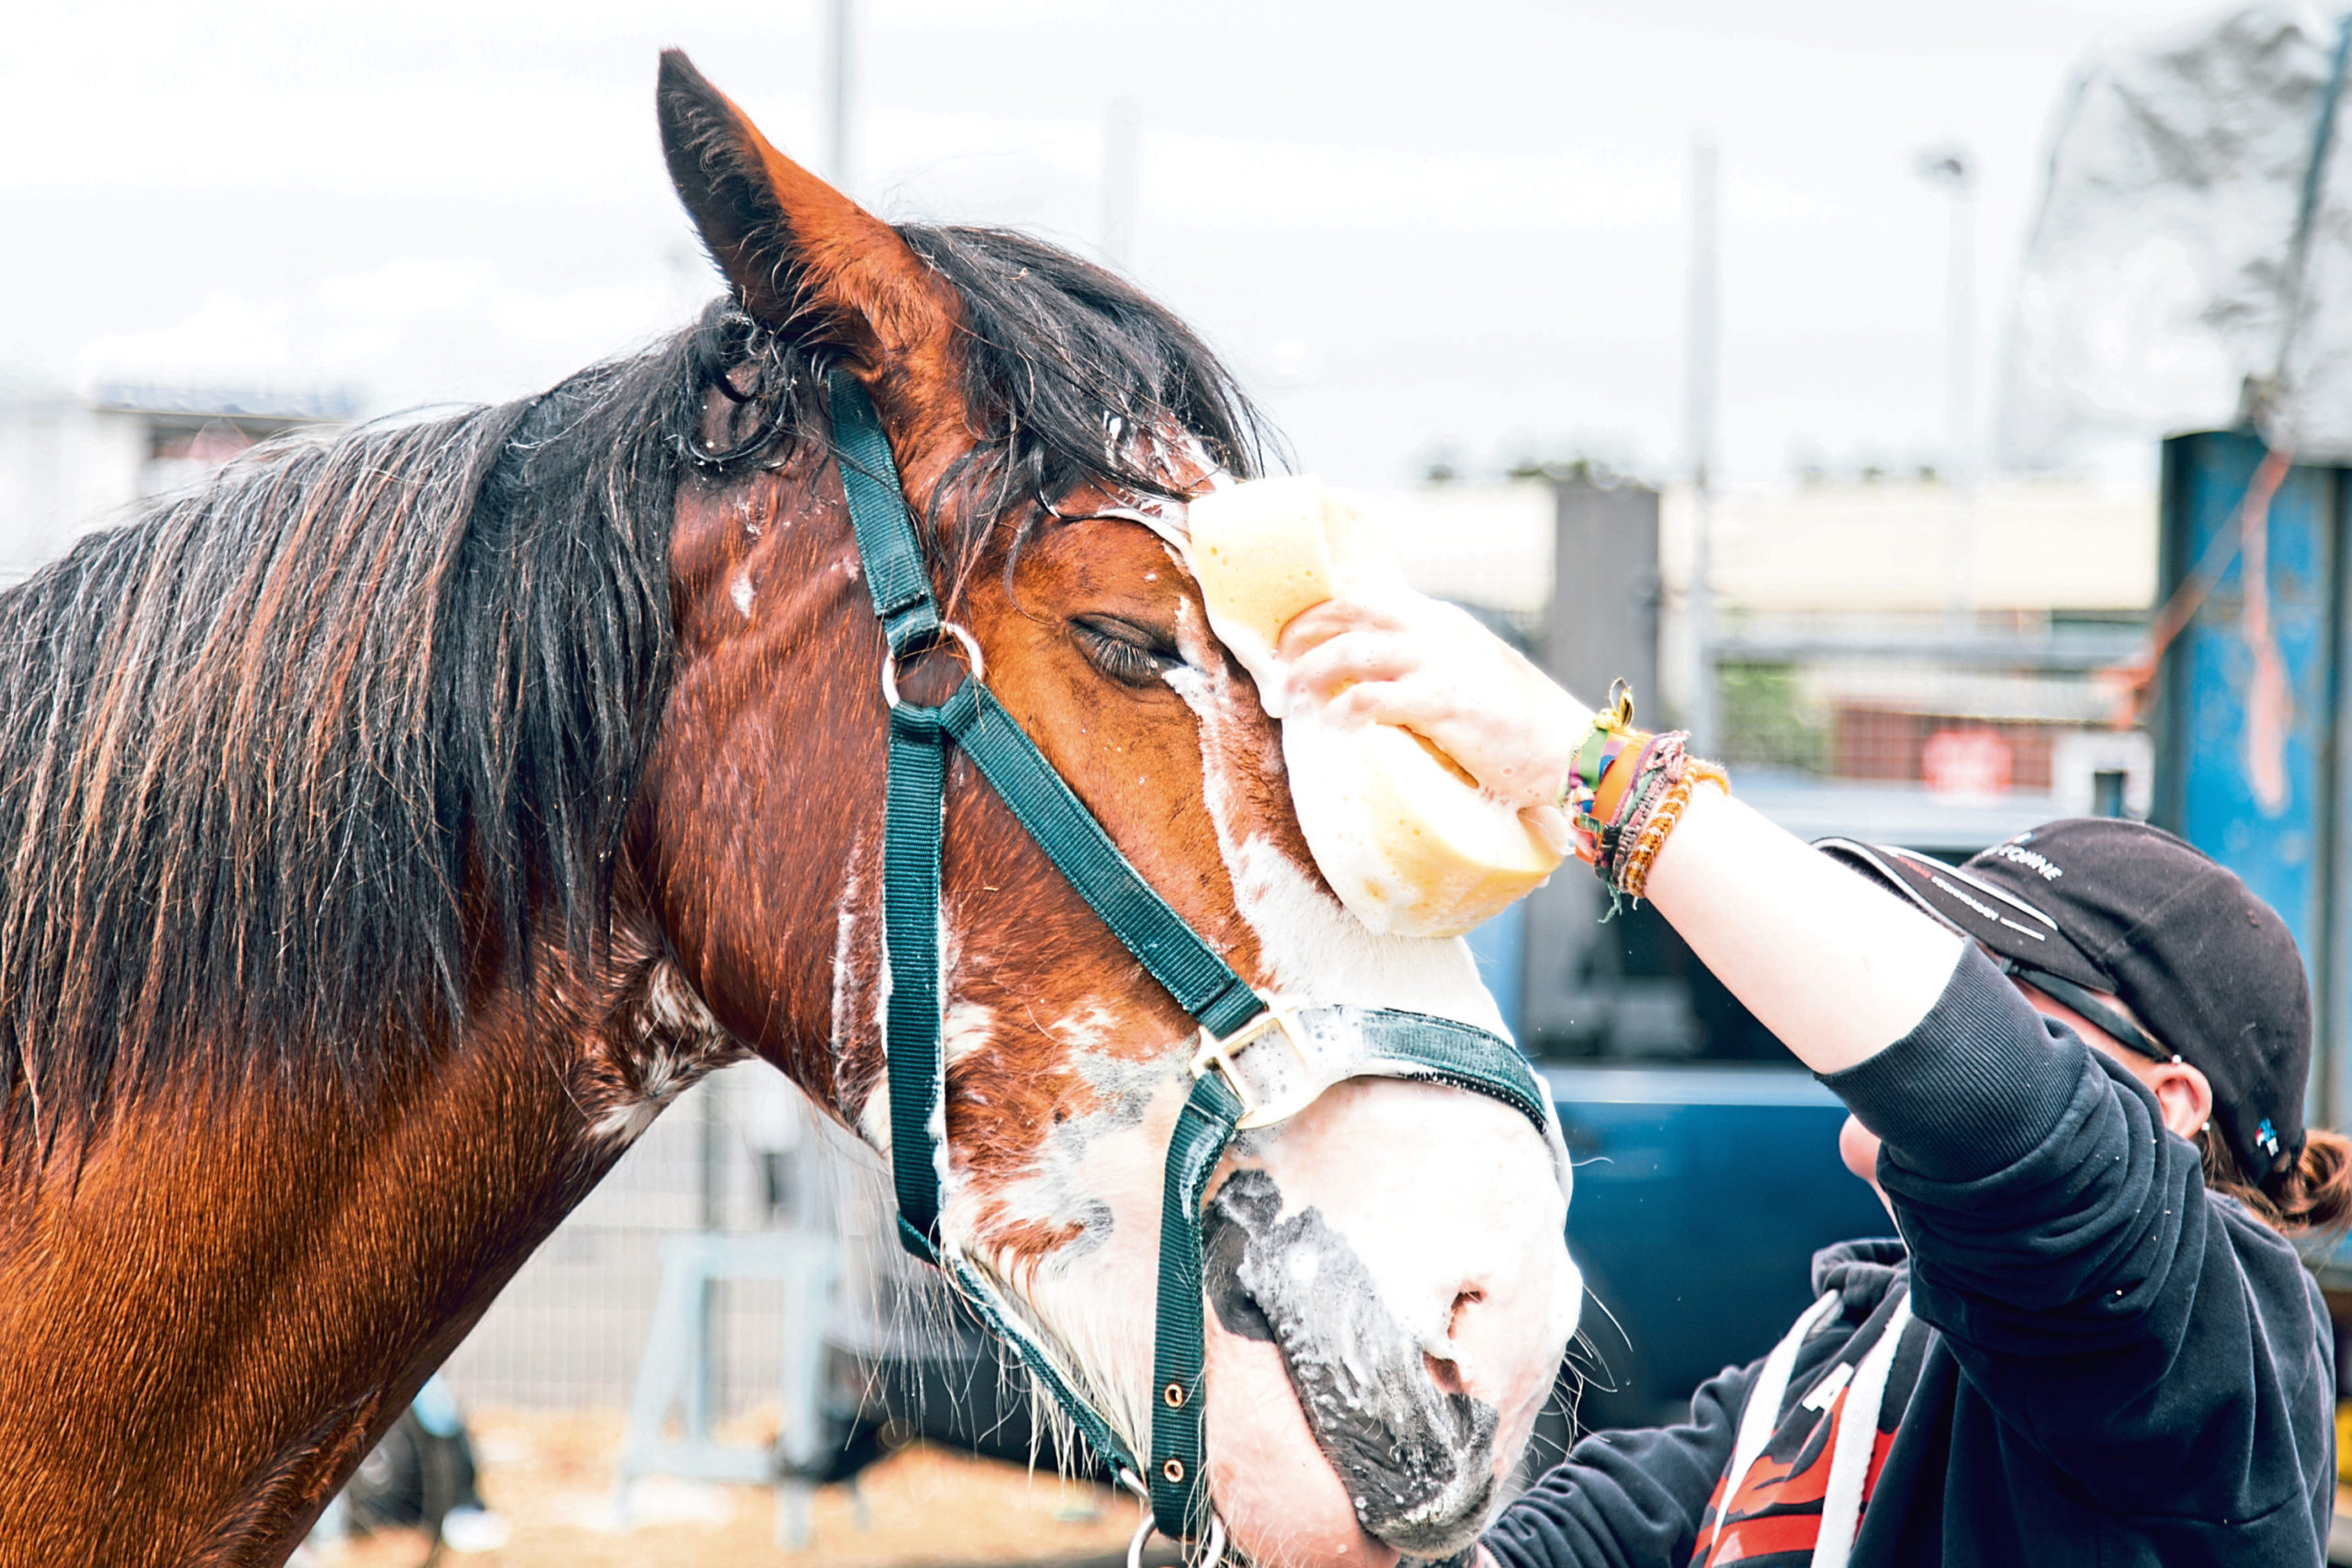 The show features eight different classes for horses, including Clydesdales.